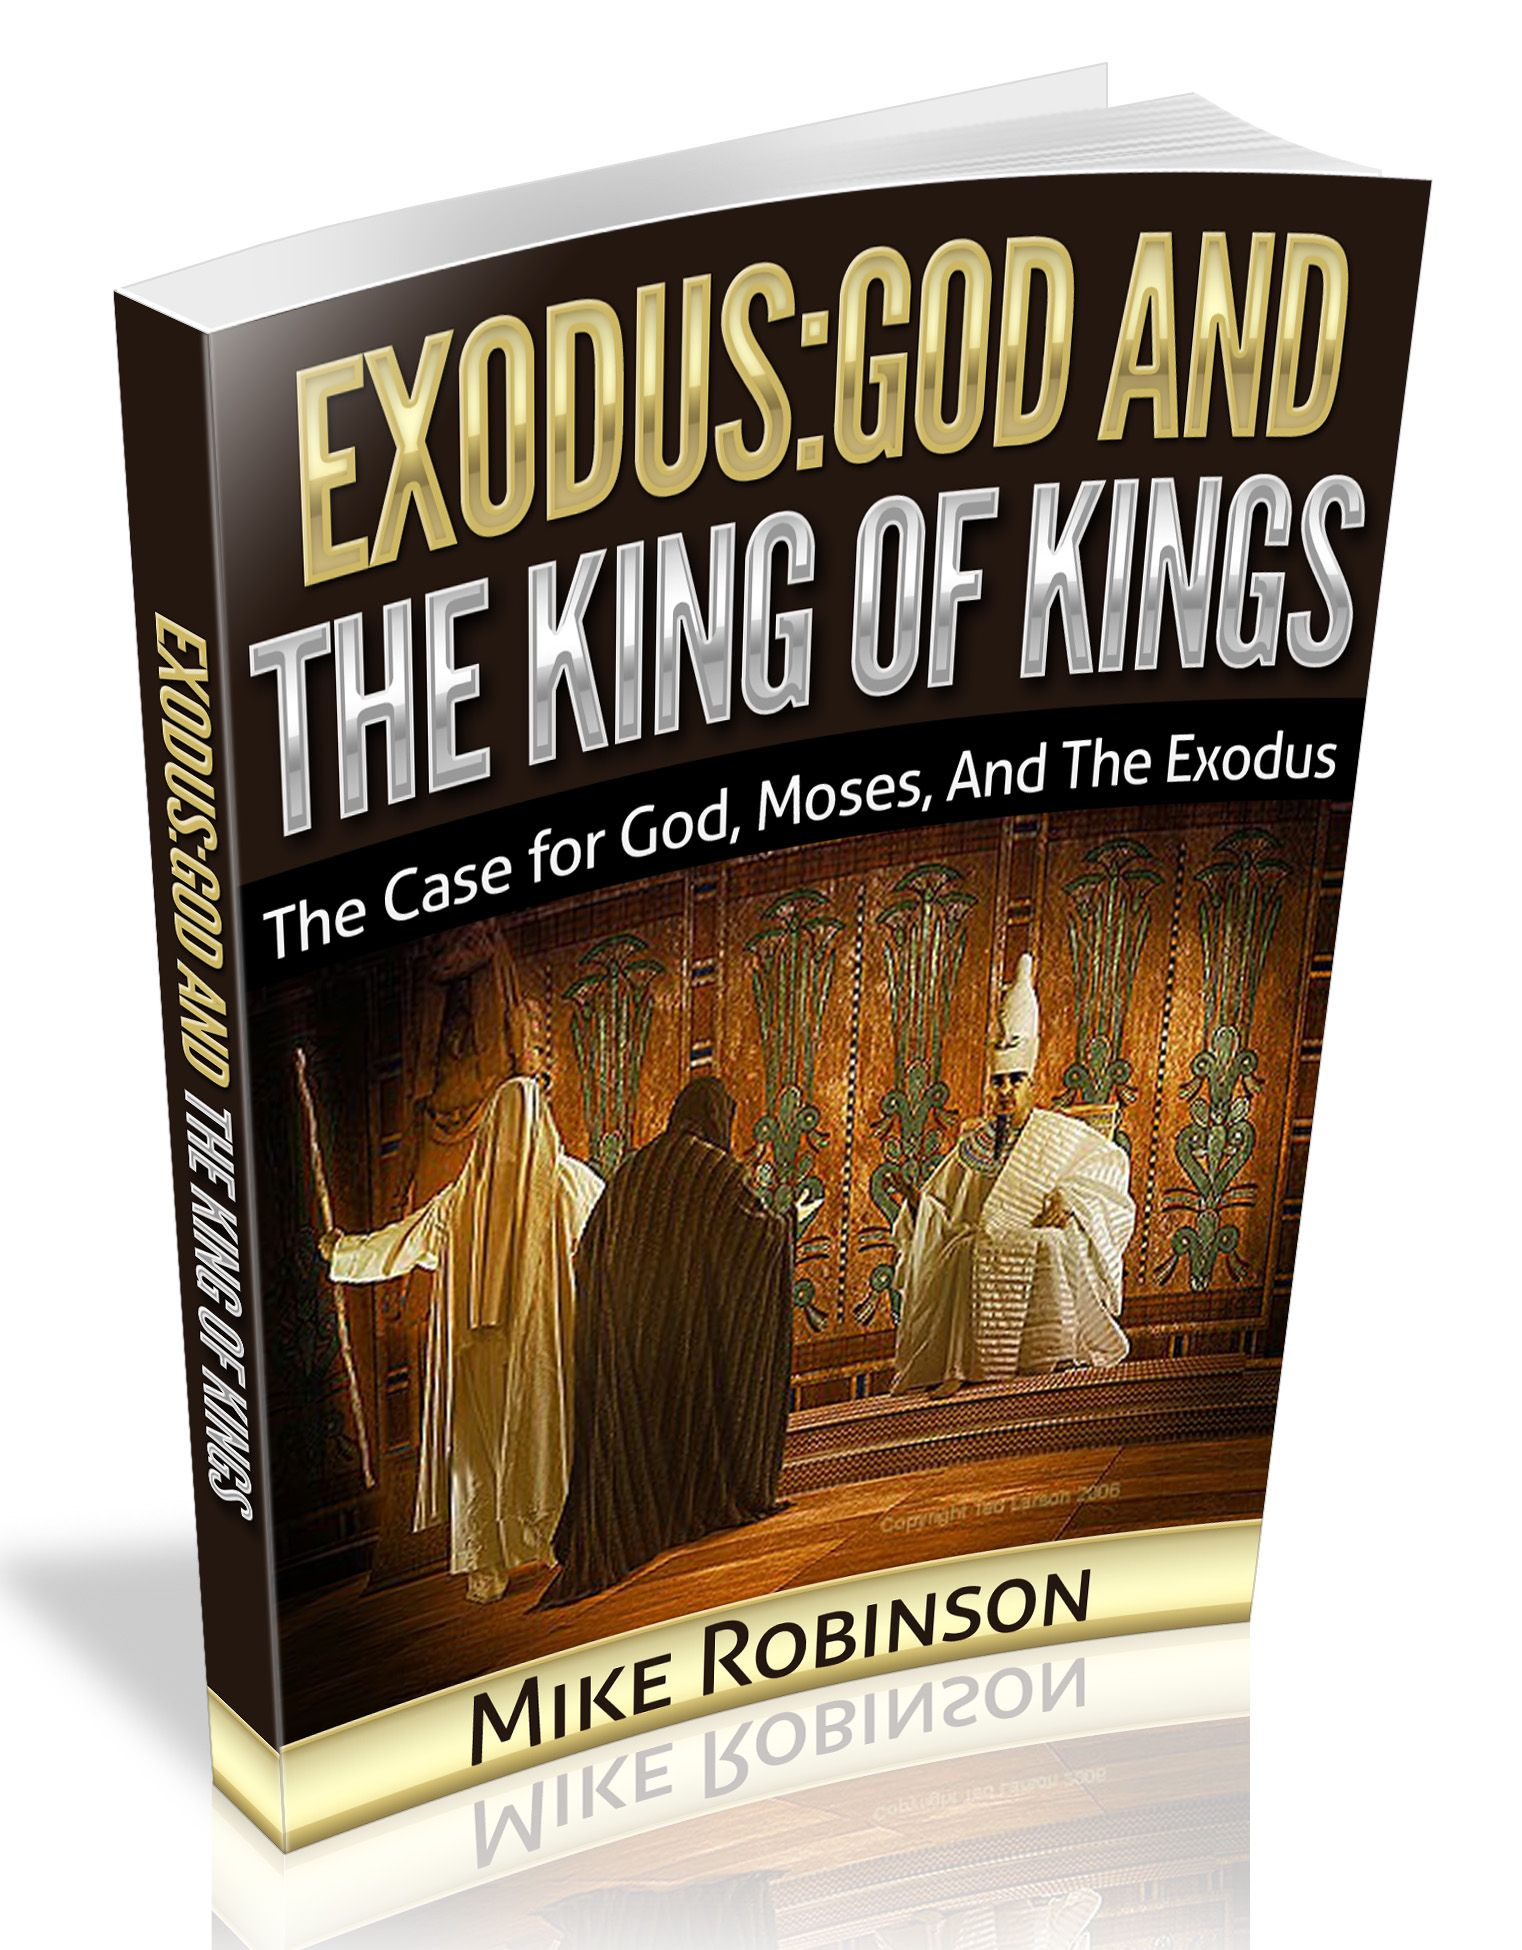 Don T Miss Movie Trailer Exodus King Of Kings The Case For God Moses Https Www Youtube Com Watch V R7v Yw0pedq Feature Apologetics Book Trailers Moses